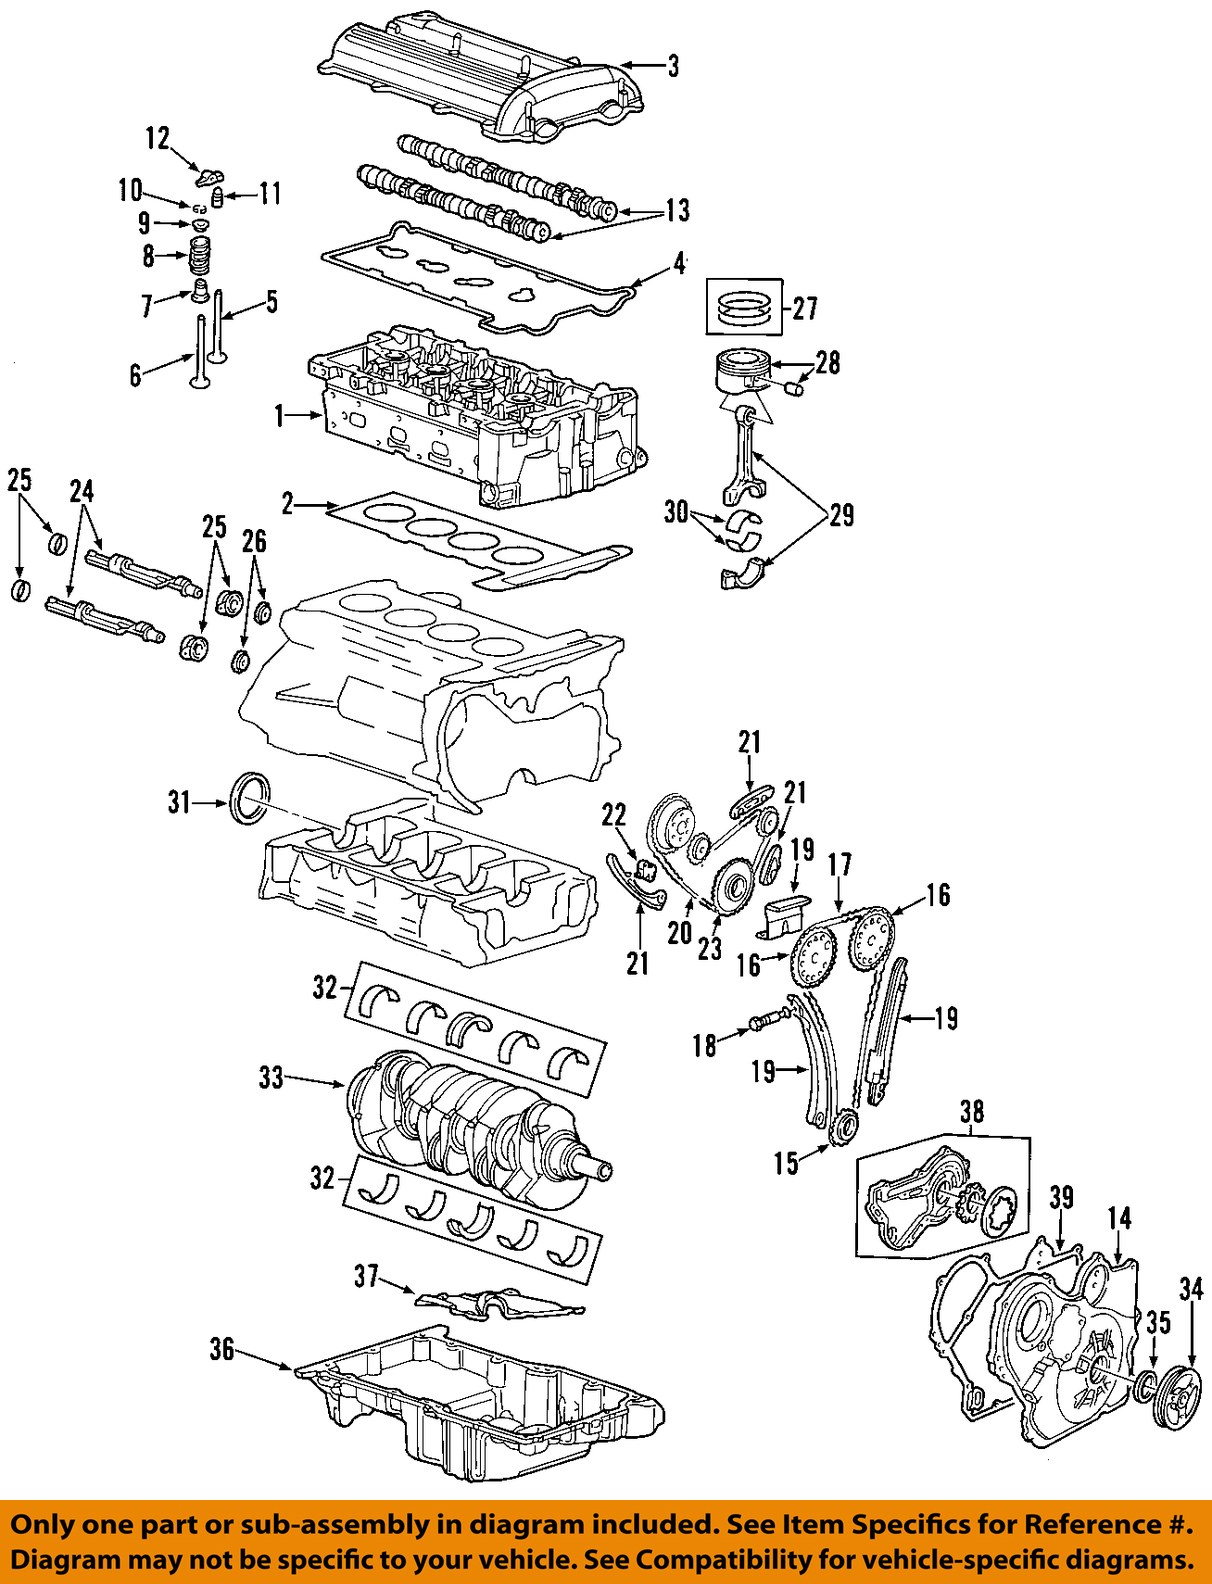 2002 Saturn Vue Engine Diagram Wiring Diagram Owner Owner Bowlingronta It